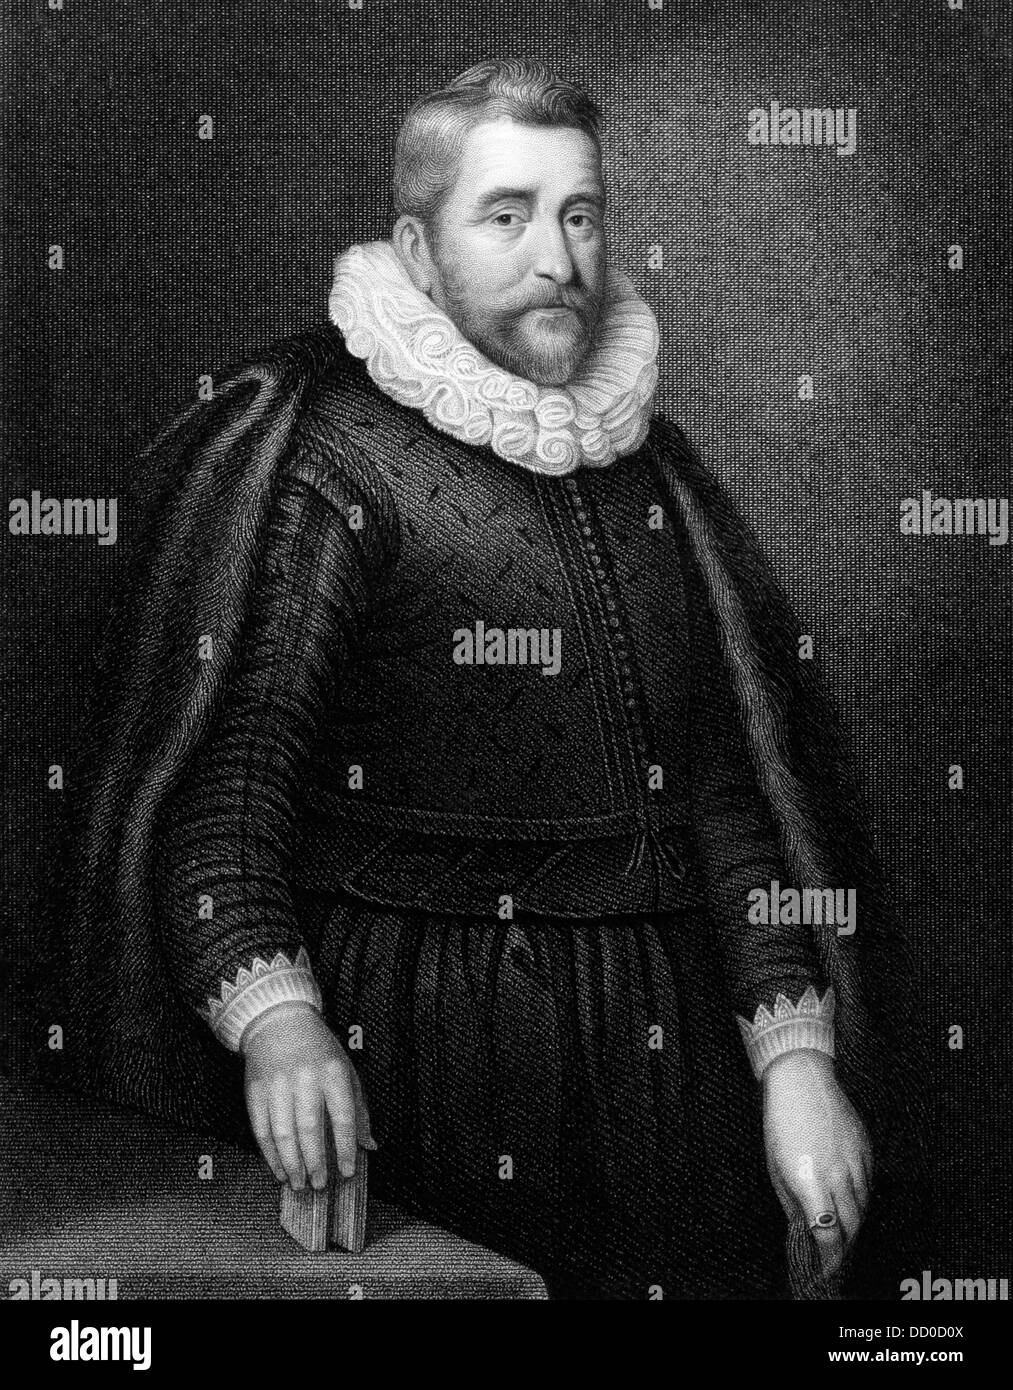 Henry Wotton (1568-1639) on engraving from 1831. English author and diplomat. - Stock Image